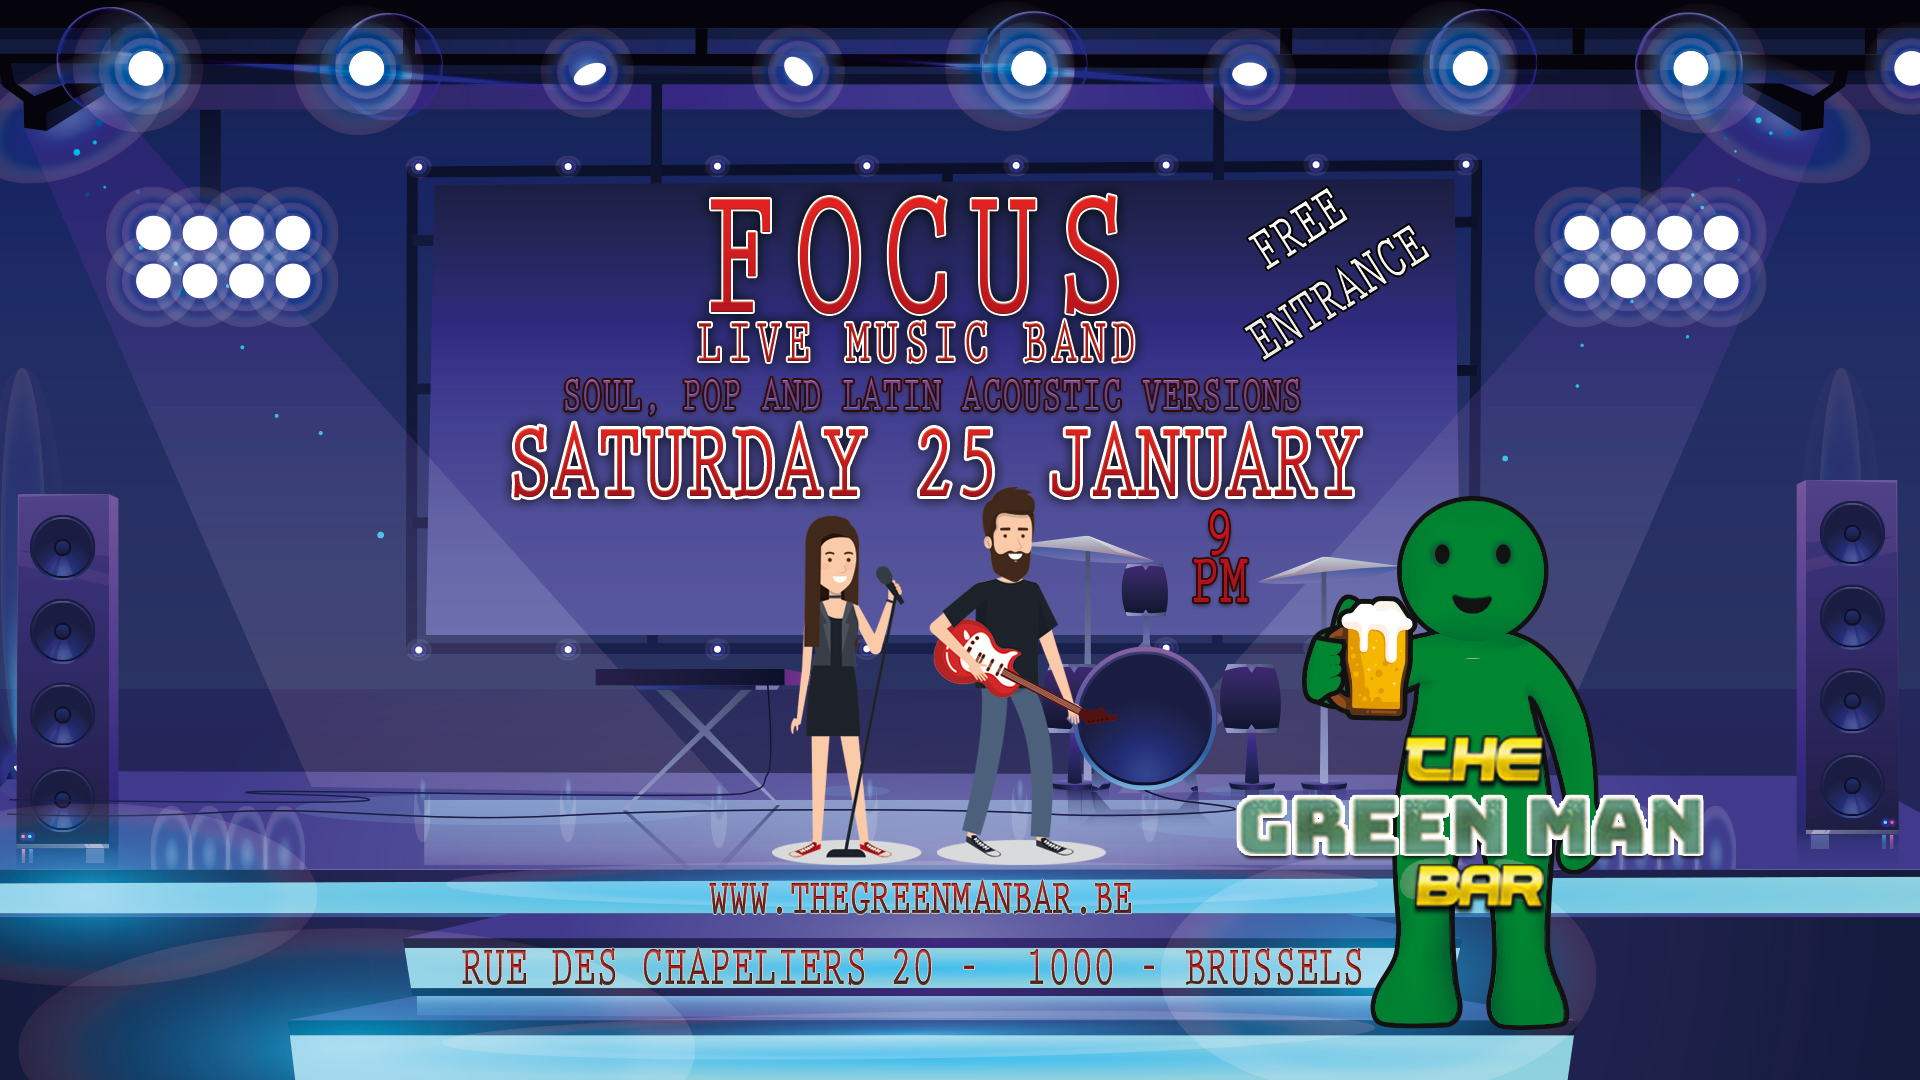 FOCUS live band in the heart of Brussels – Saturday 25 January – 9PM